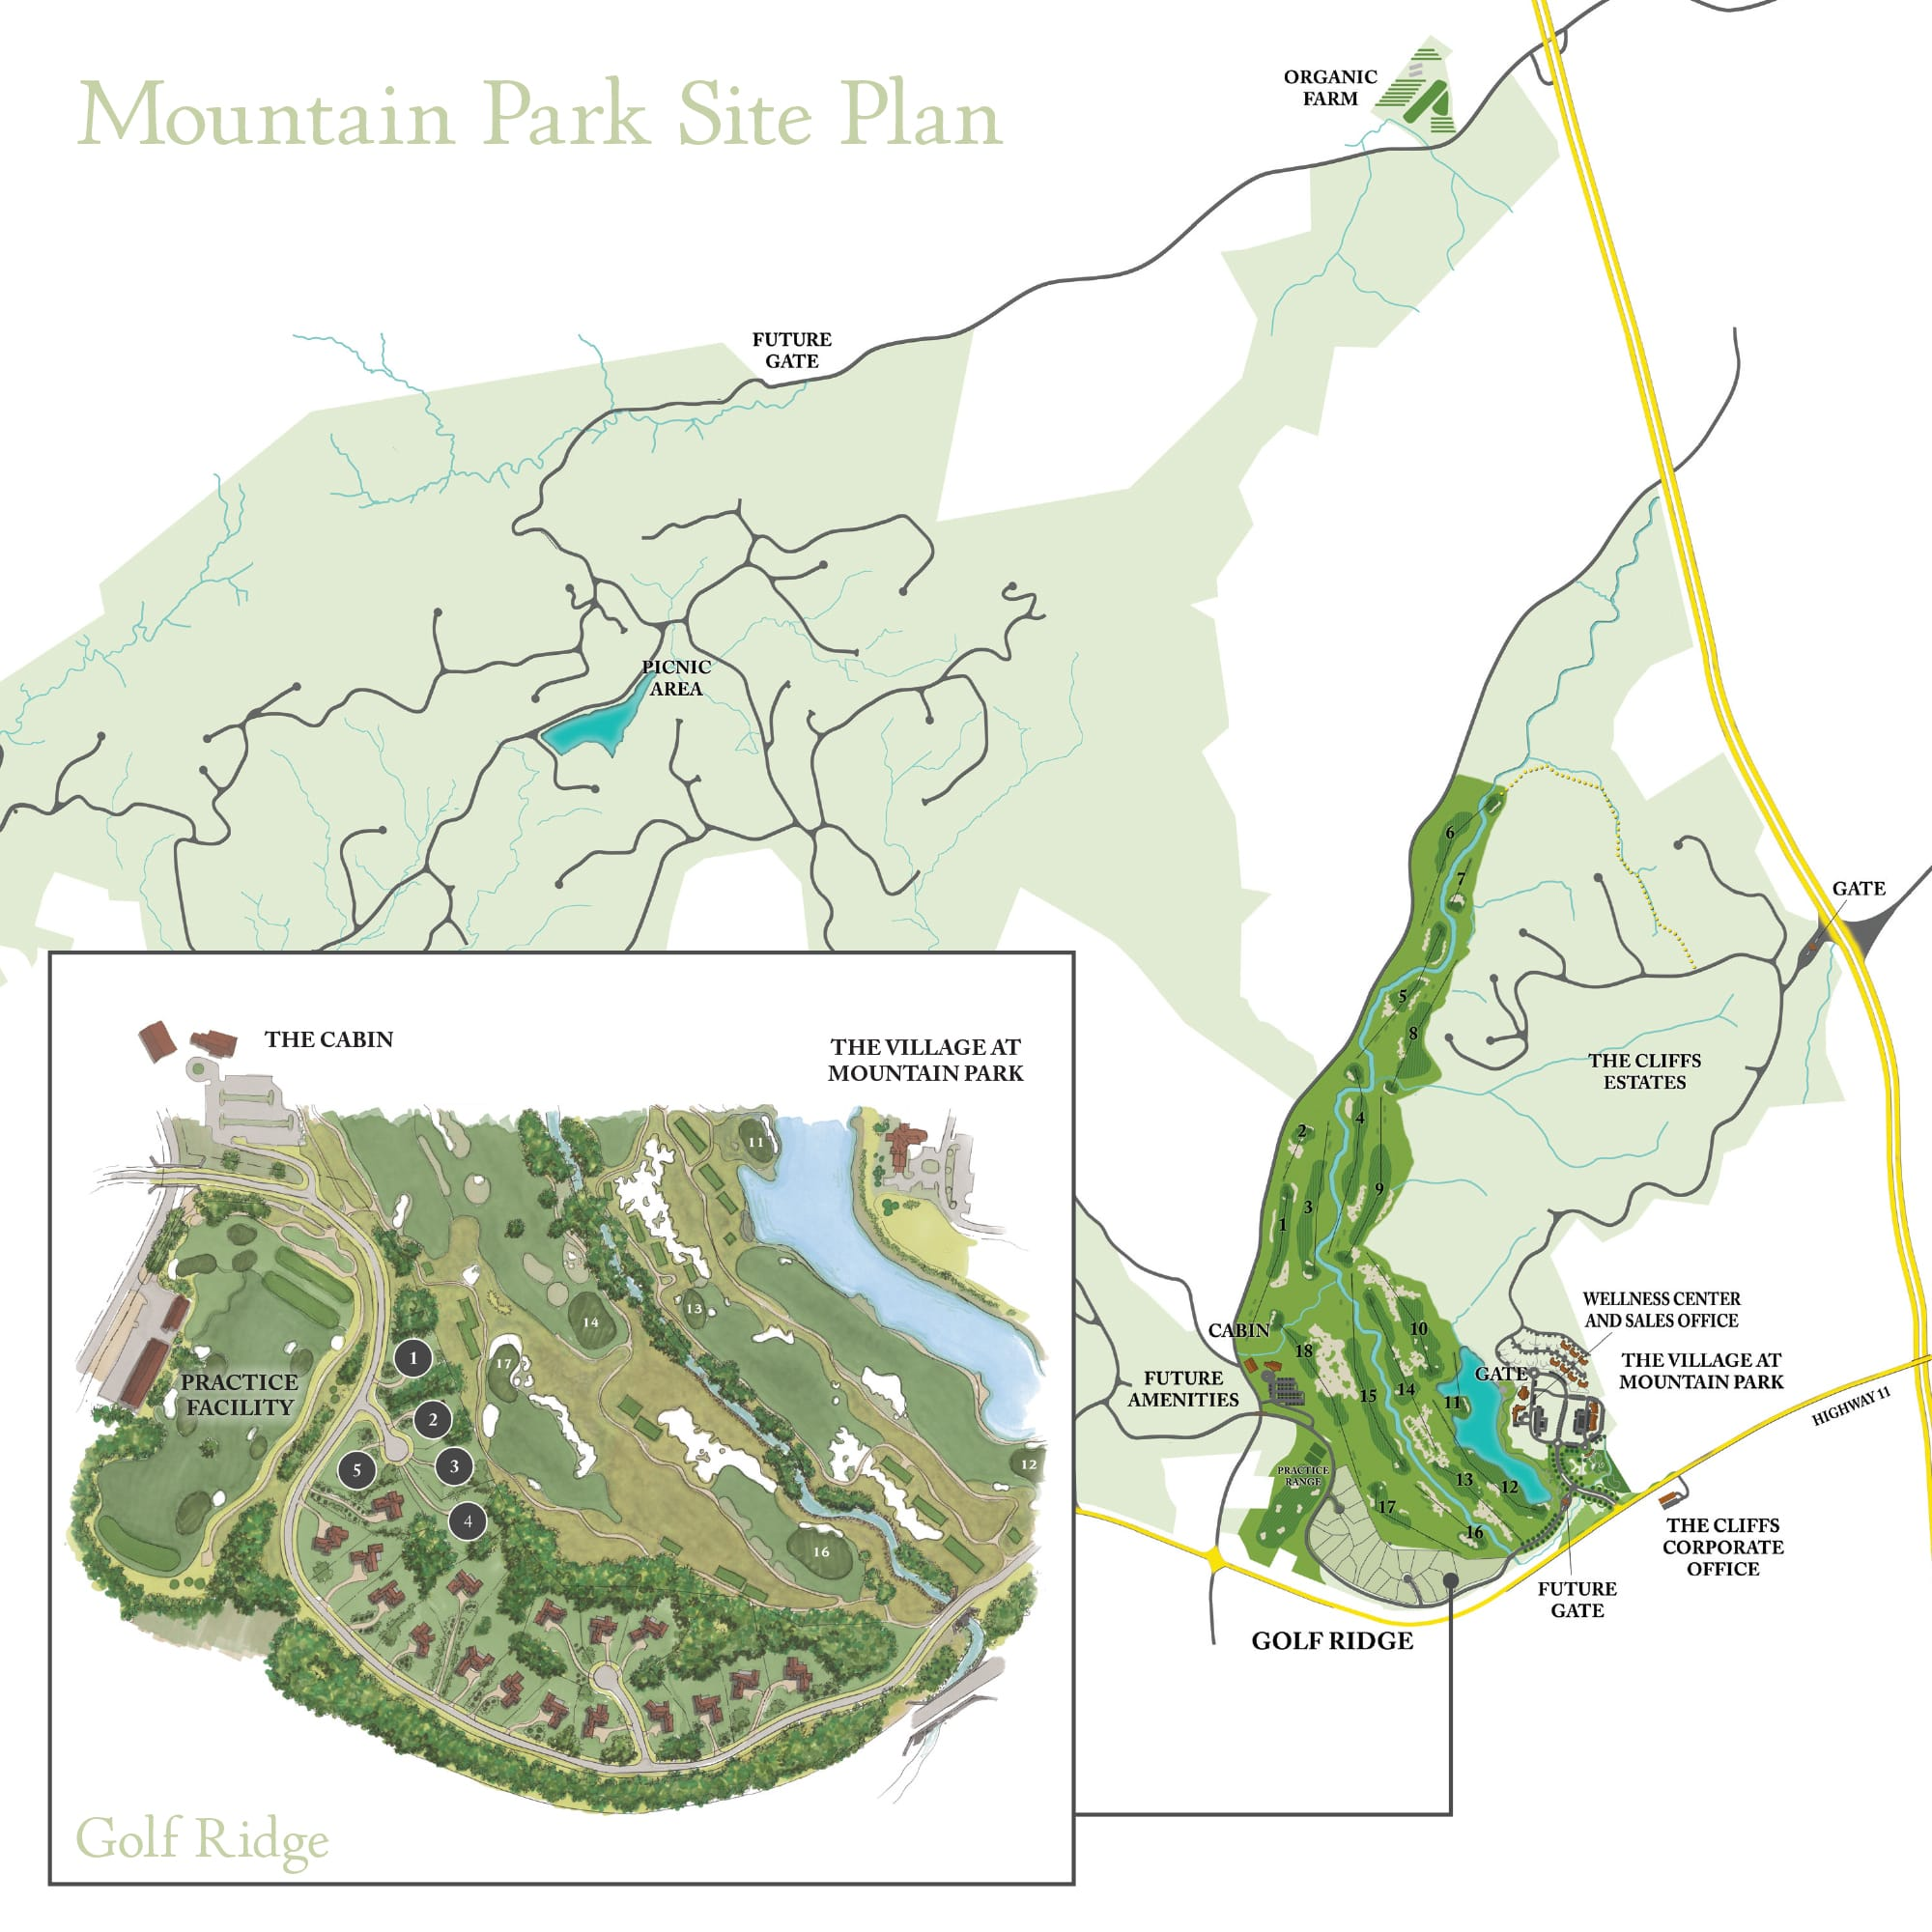 Mountain Park Site Plan